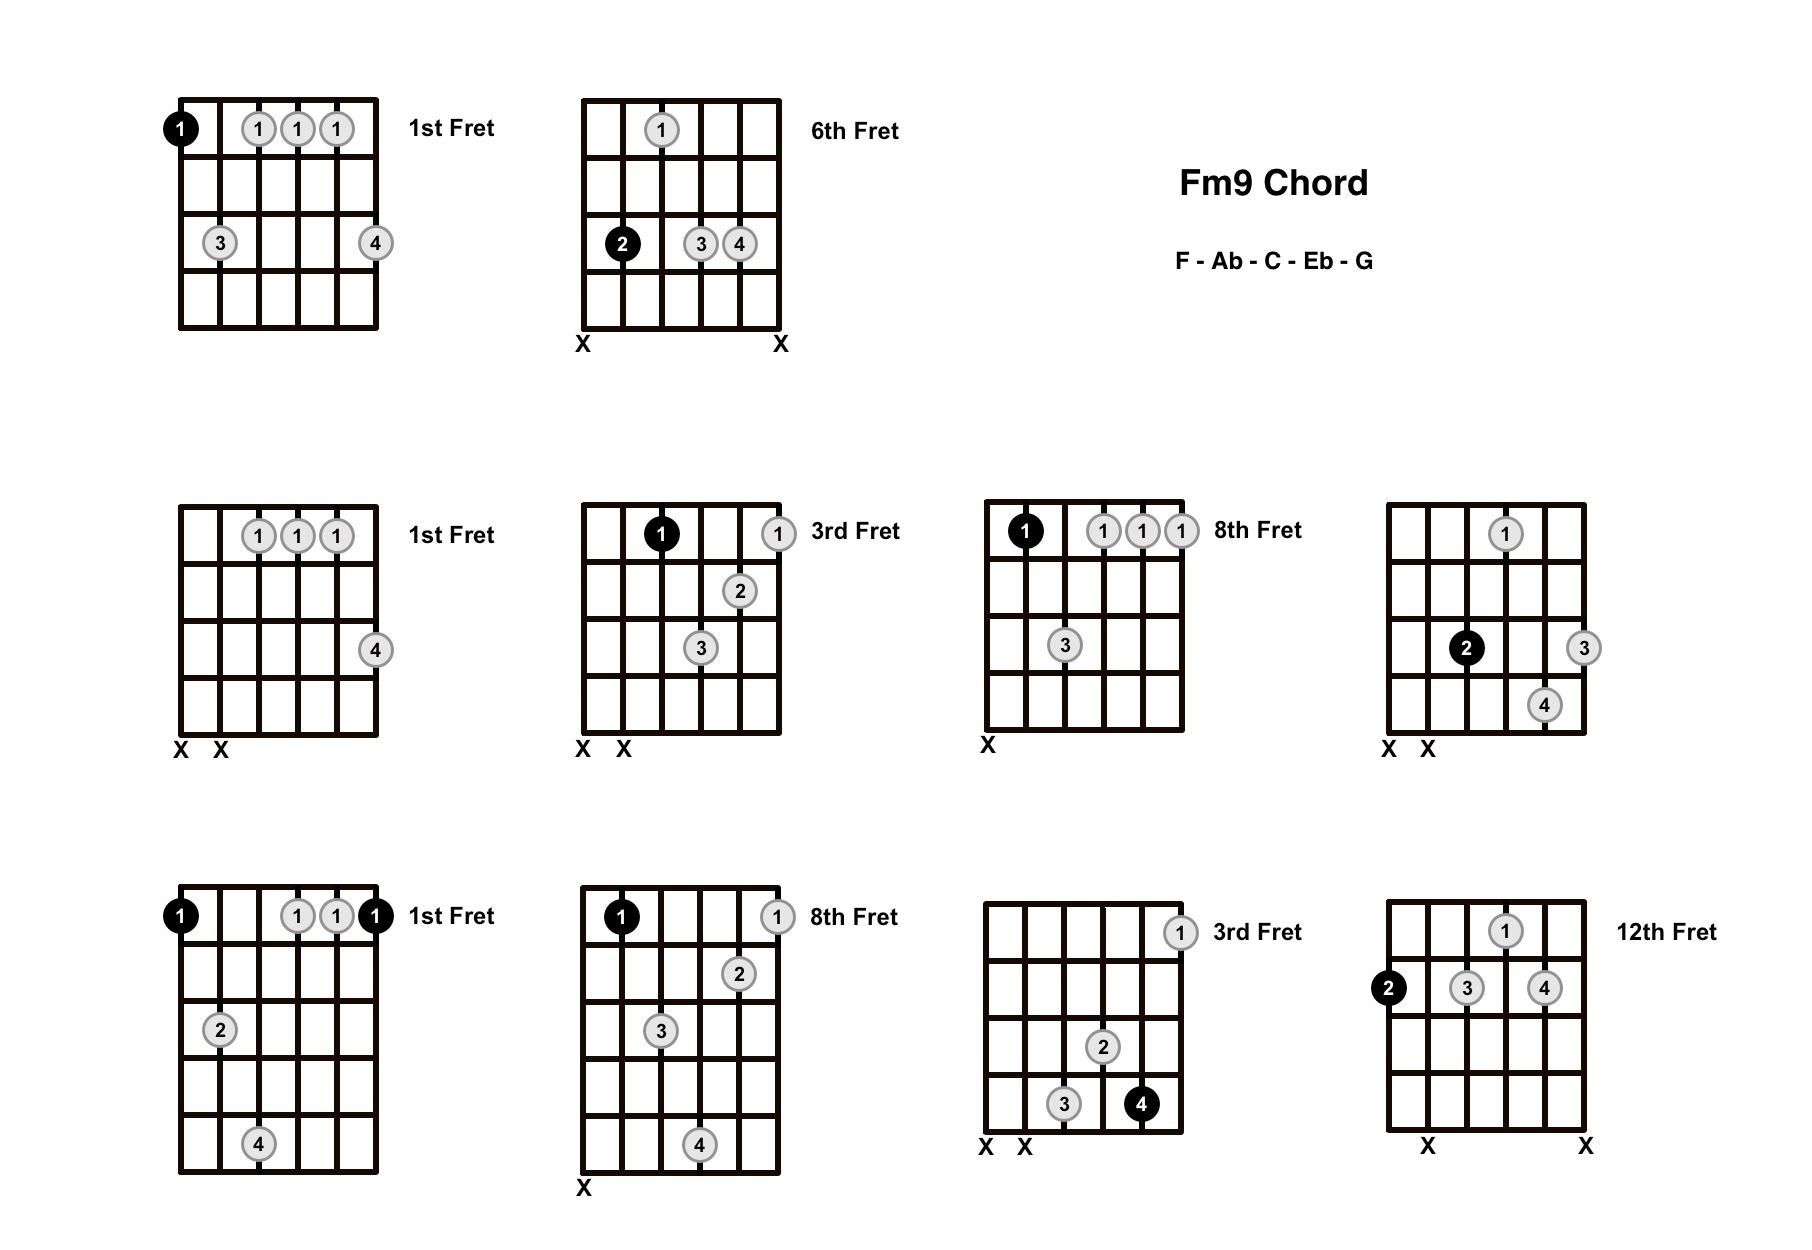 Fm9 Chord On The Guitar (F Minor 9) – Diagrams, Finger Positions and Theory